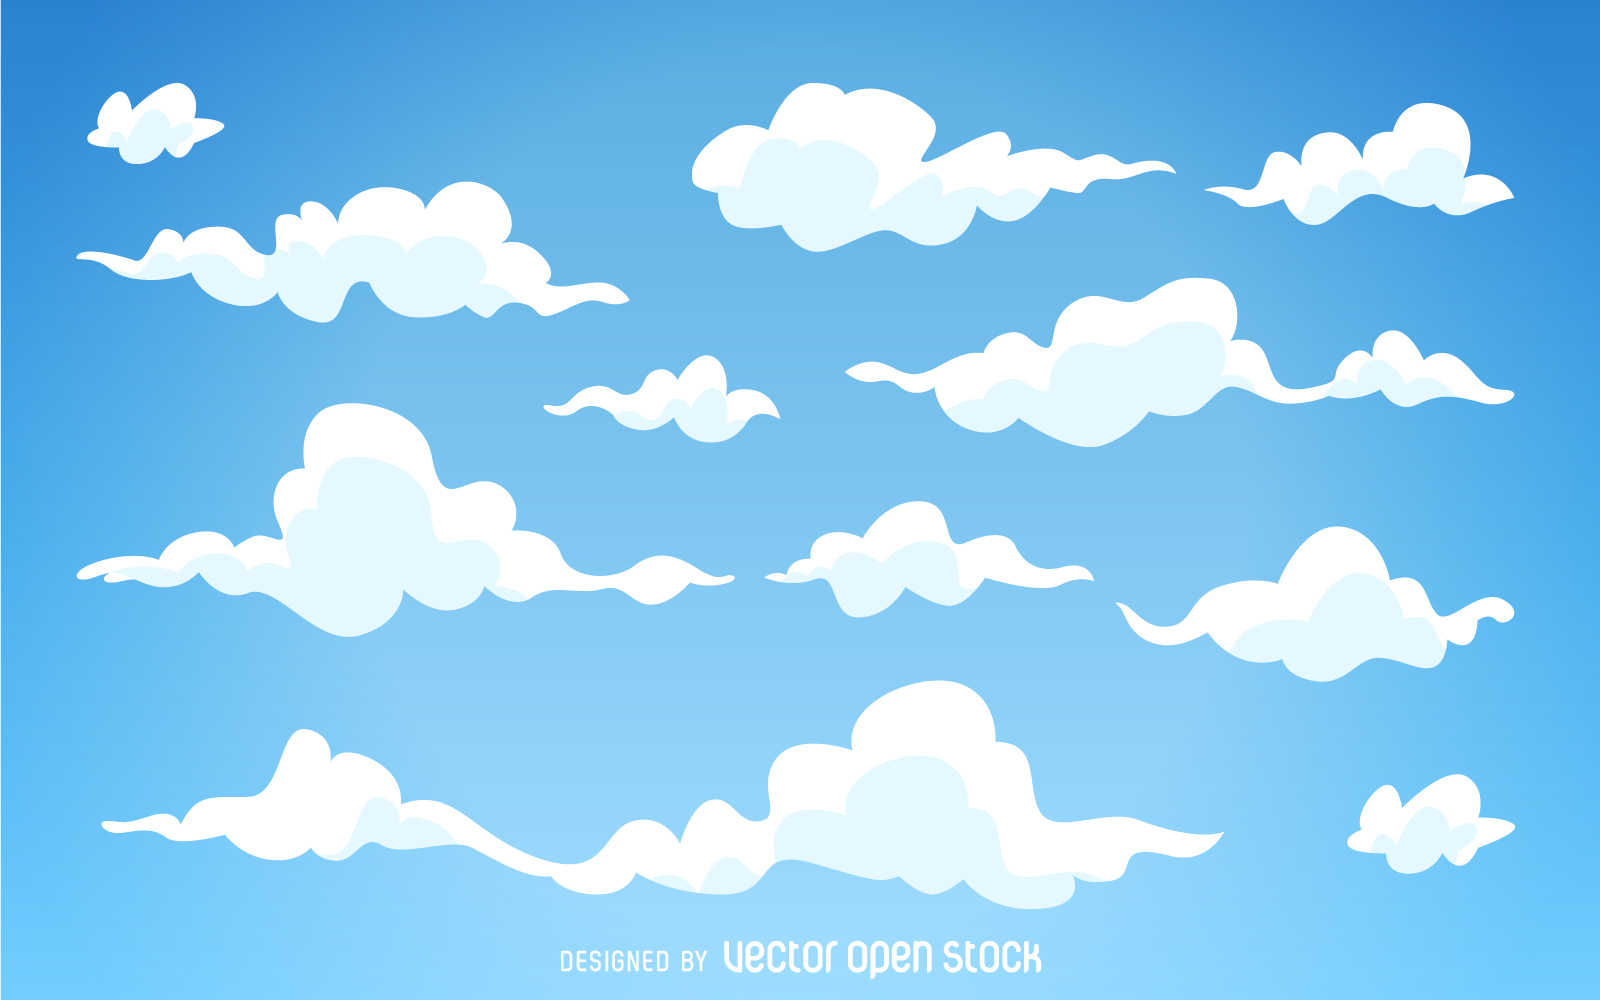 Illustrated cartoon clouds vector. Background clipart cloud